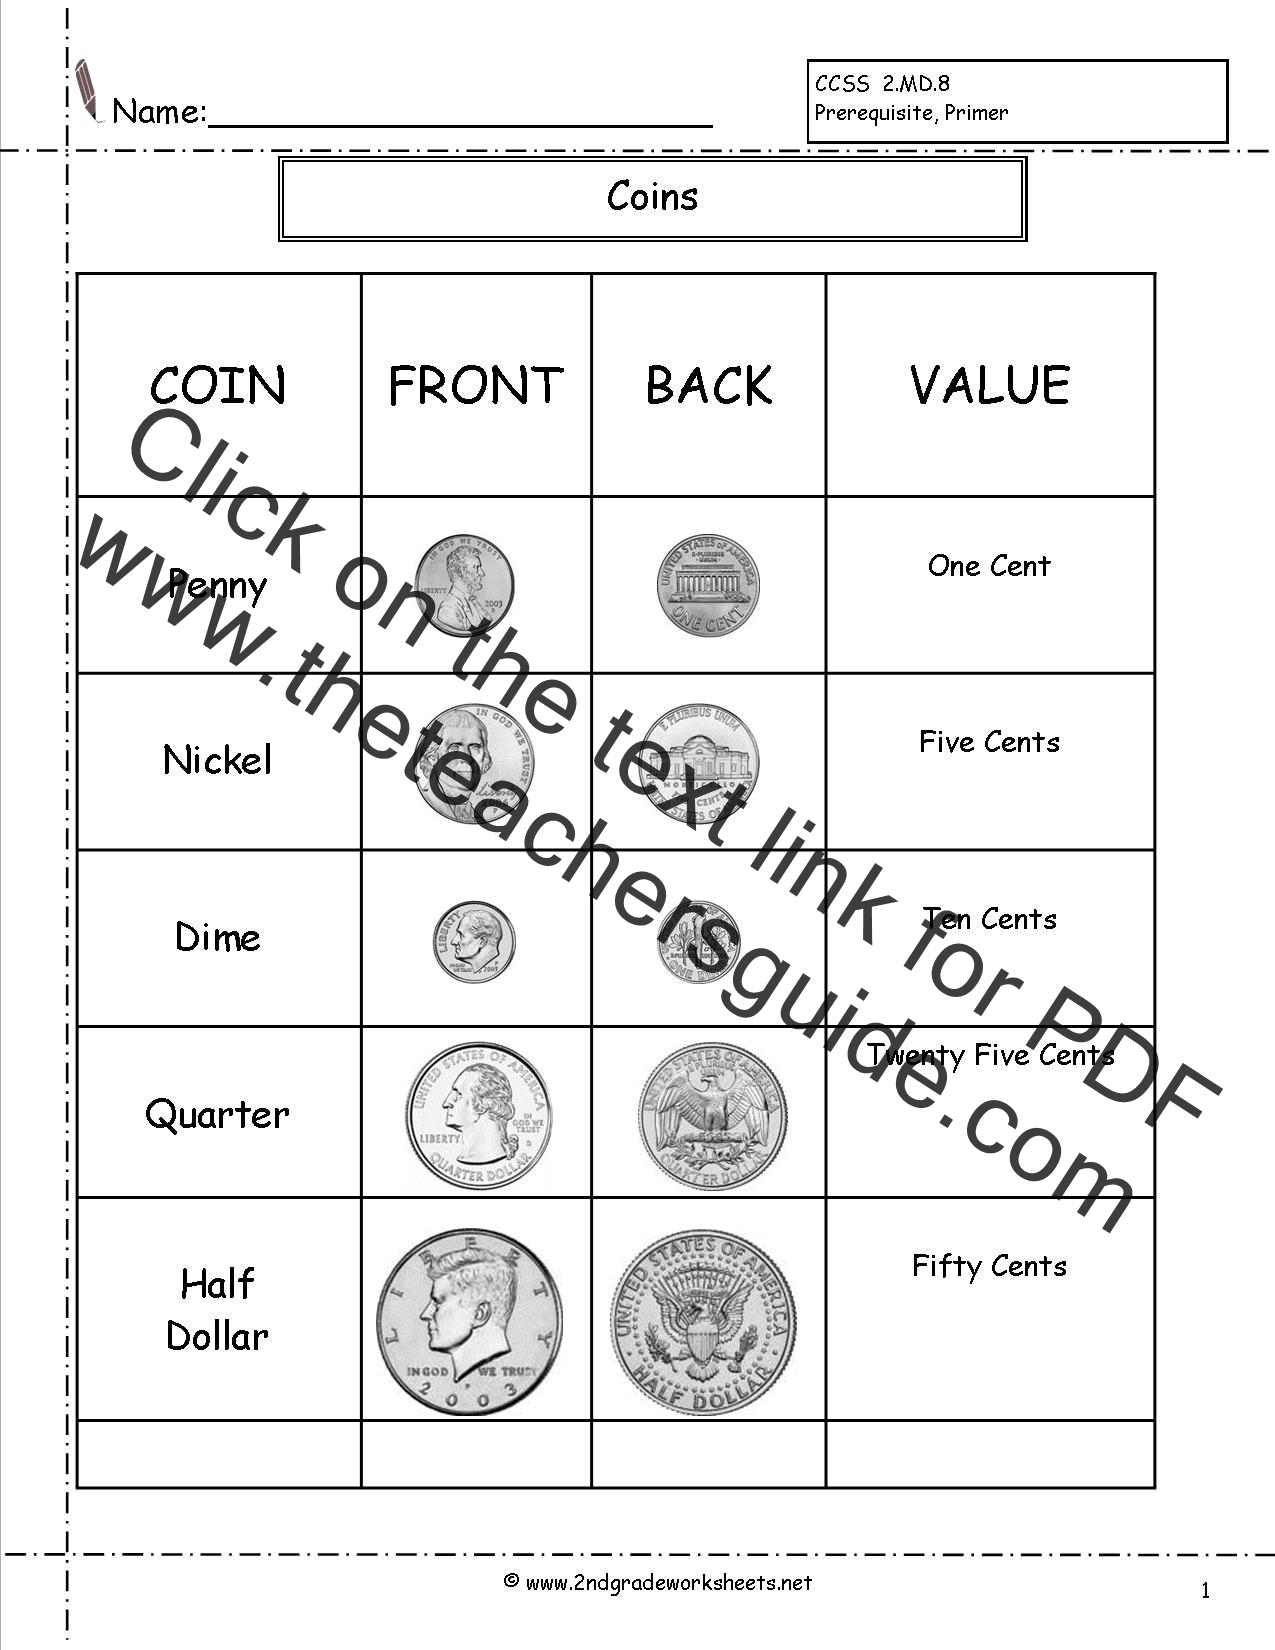 Worksheets Counting Coins Worksheets 2nd Grade counting coins and money worksheets printouts worksheet coin identification values